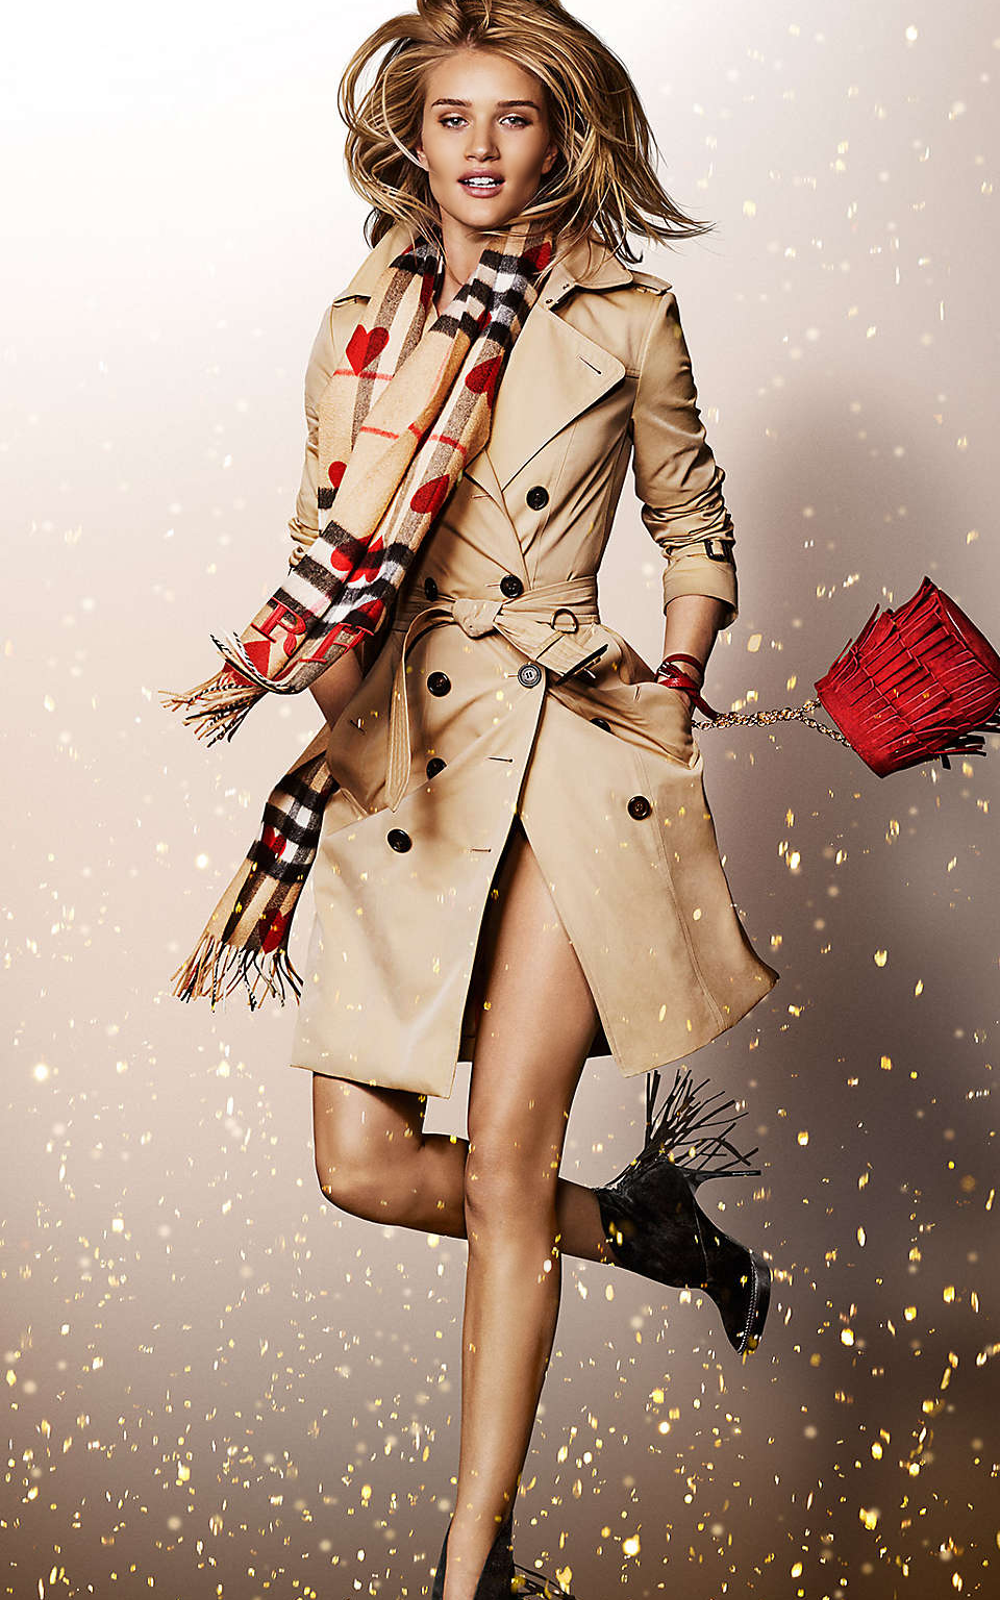 Rosie Huntington Whiteley Burberry Festive Campaign 2015.png